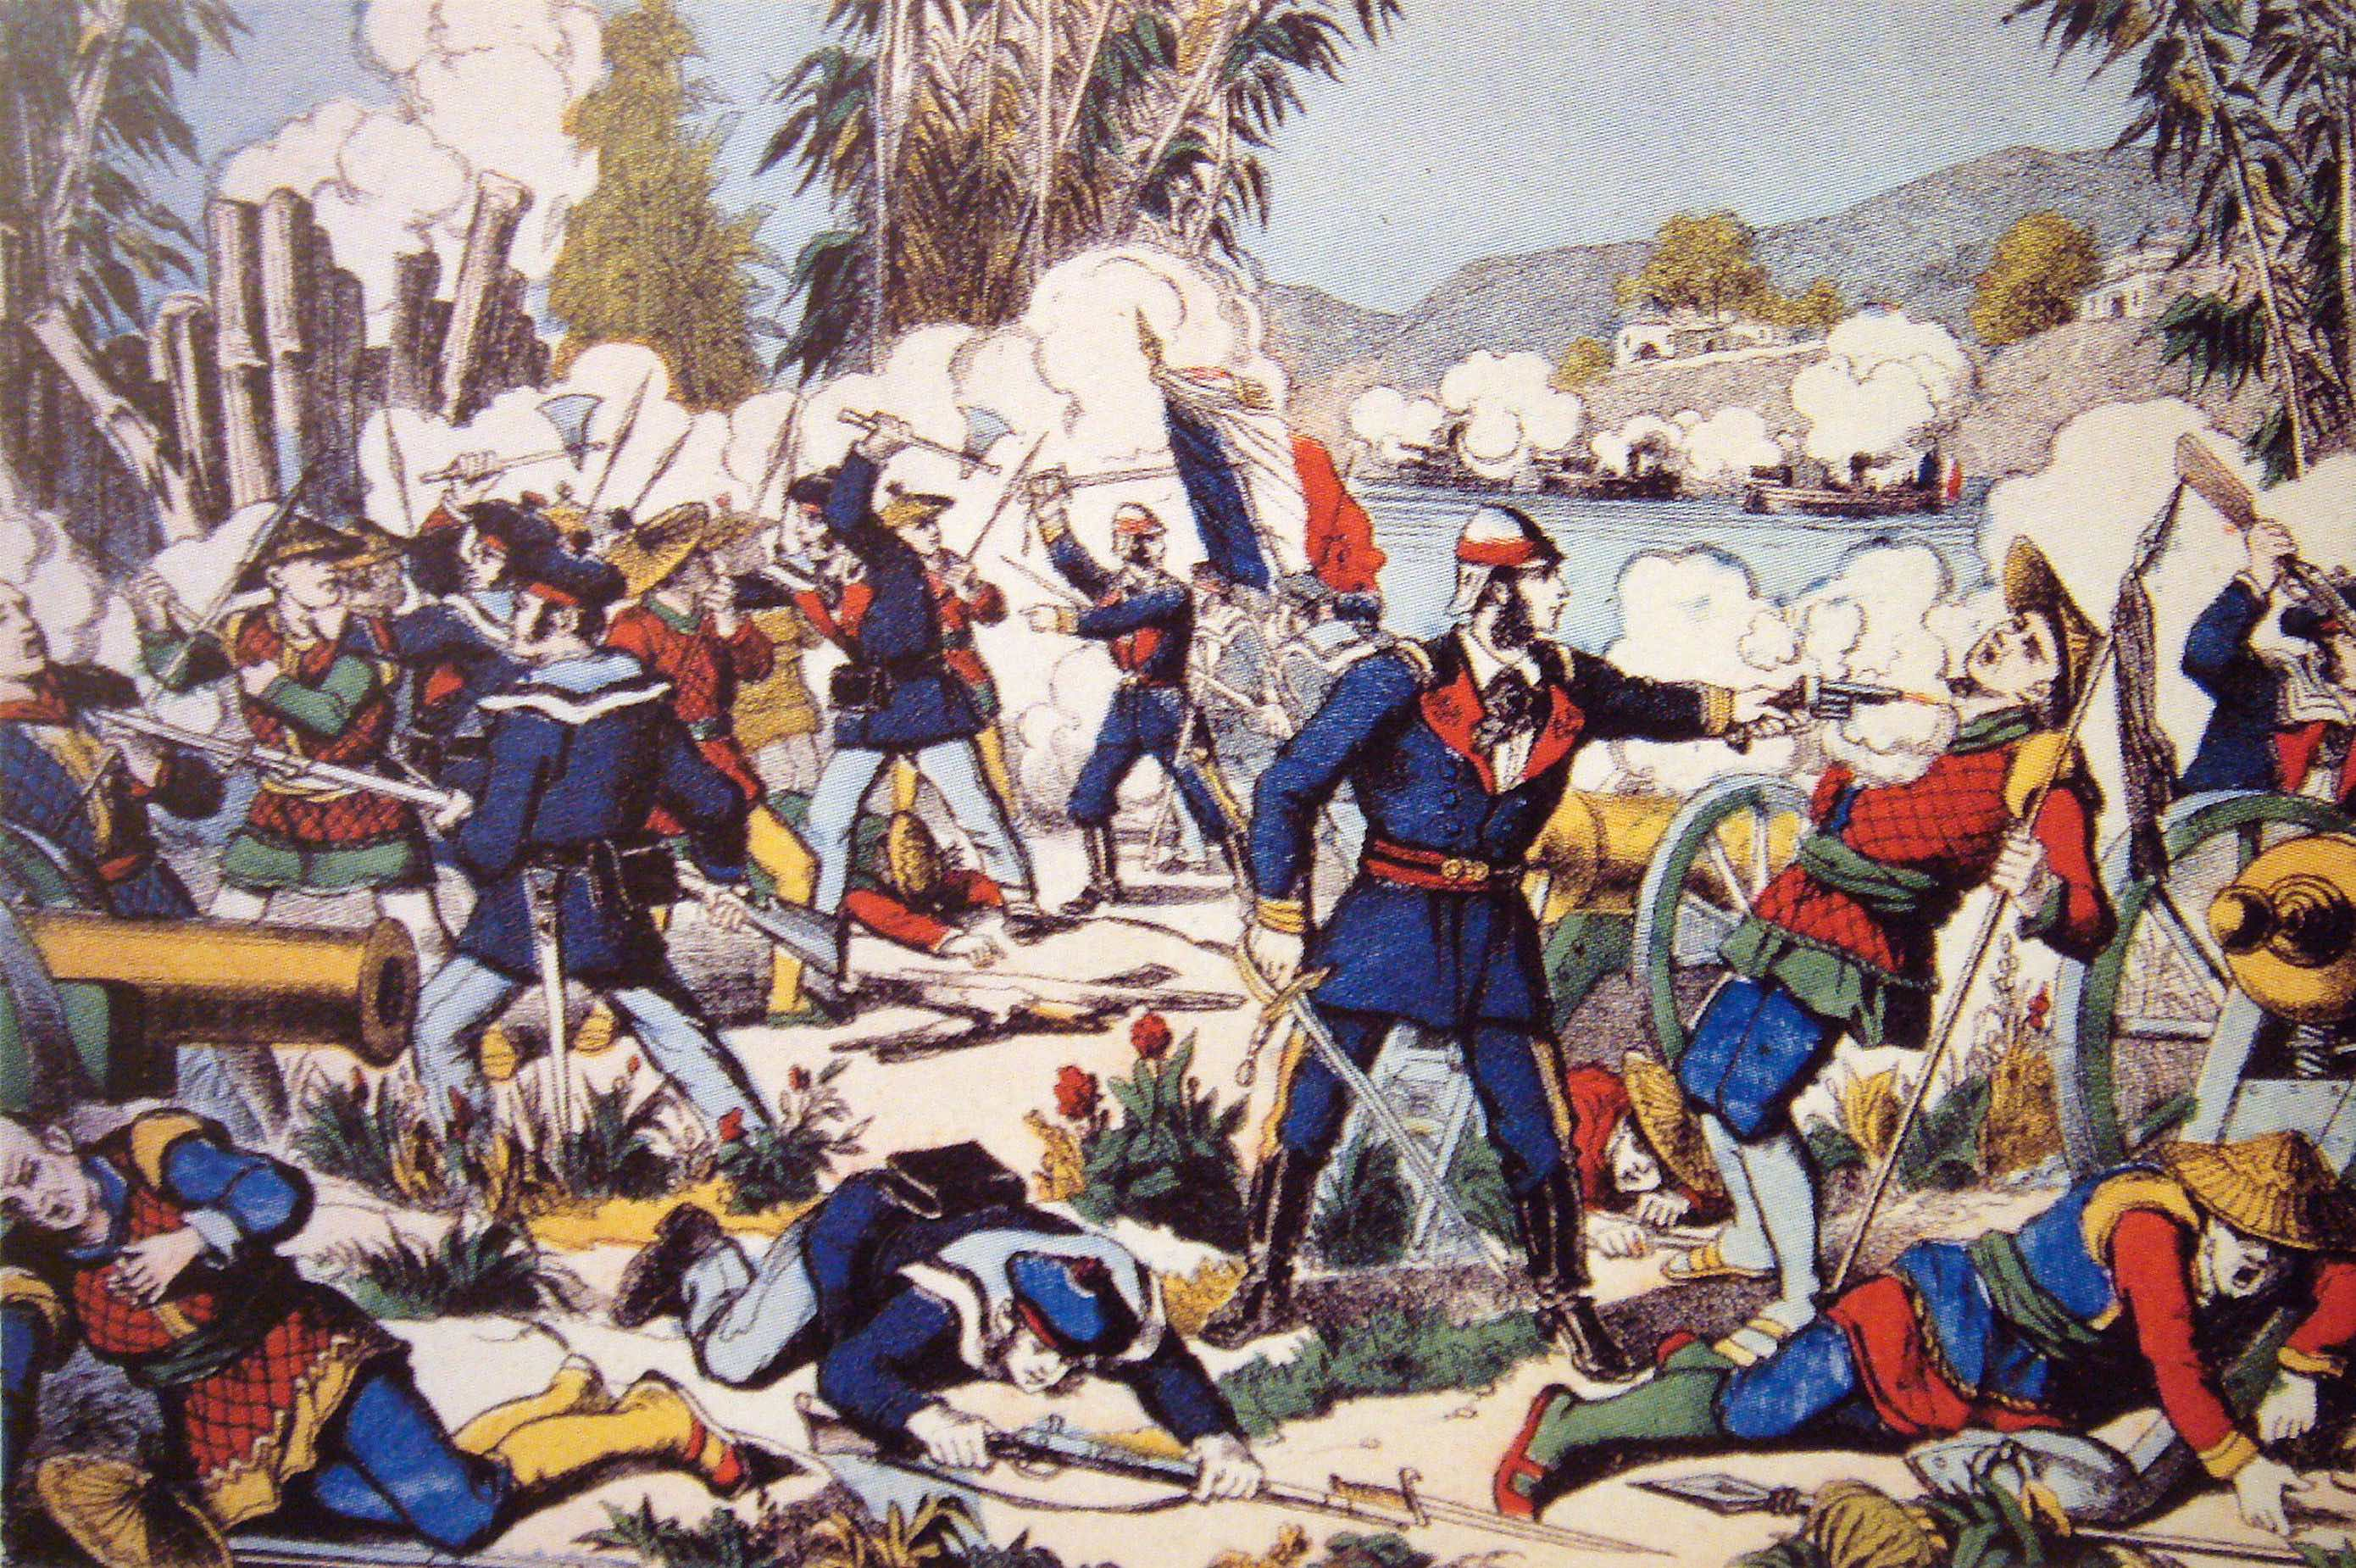 Painting depicting the French army attacking Nam Định, 1883. Credit: Wikimedia Commons